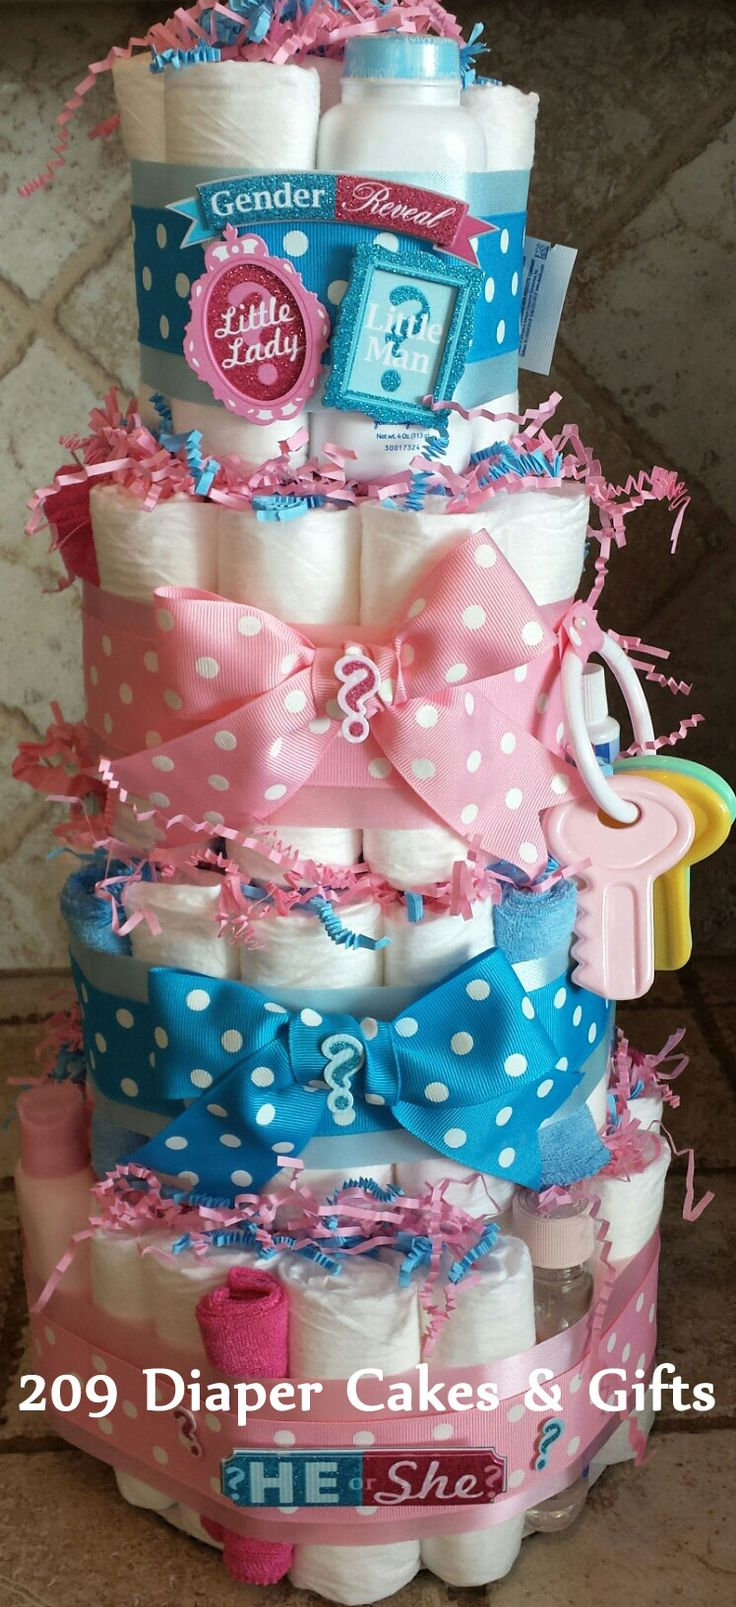 4-Tier Pink & Blue Gender Reveal Diaper Cake by 209 Diaper Cakes & Gifts